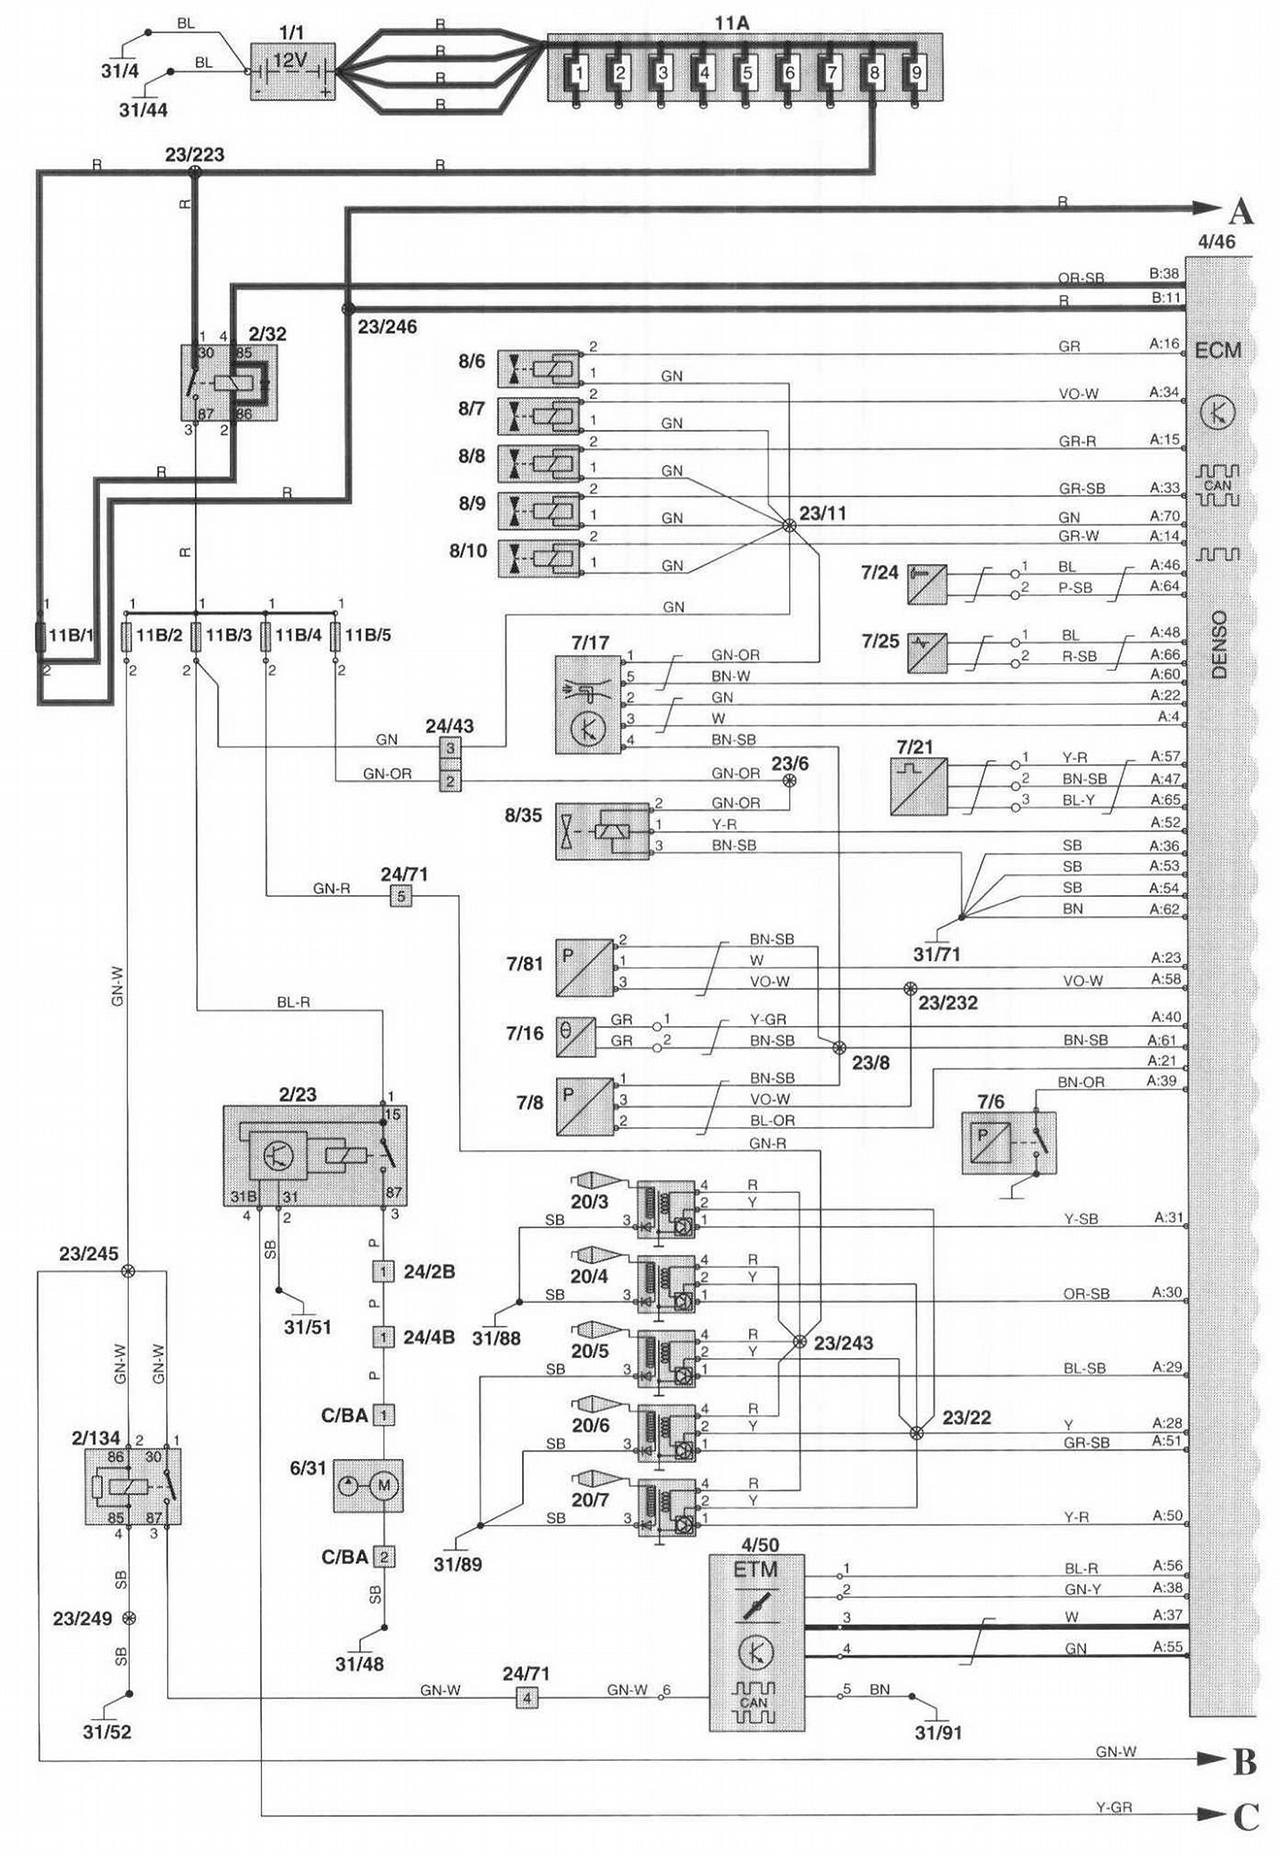 volvo v50 fuse box wiring diagram automotivewiring diagram volvo s40 2001 wiring diagram schematic volvo v50 fuse box